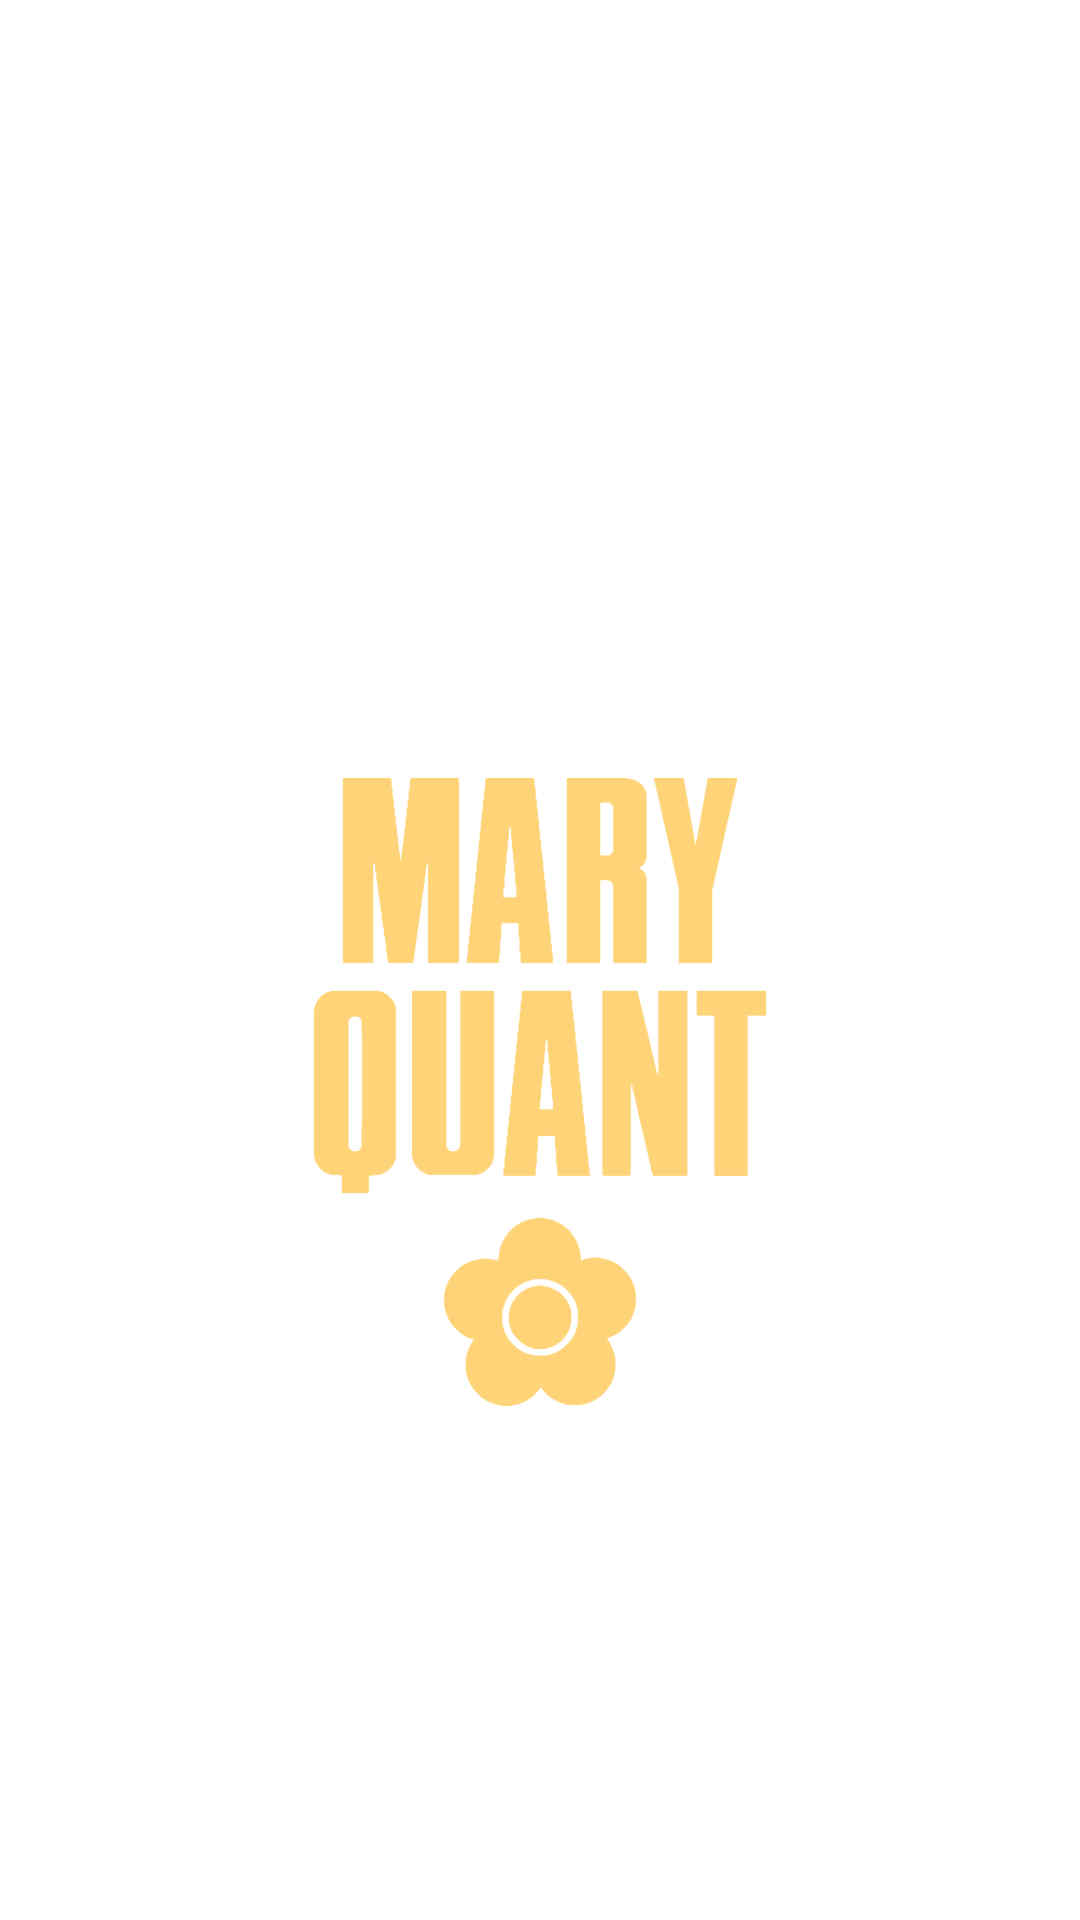 maryquant i13 - 20 MARY QUANT HQ Smartphone Wallpaper Collection